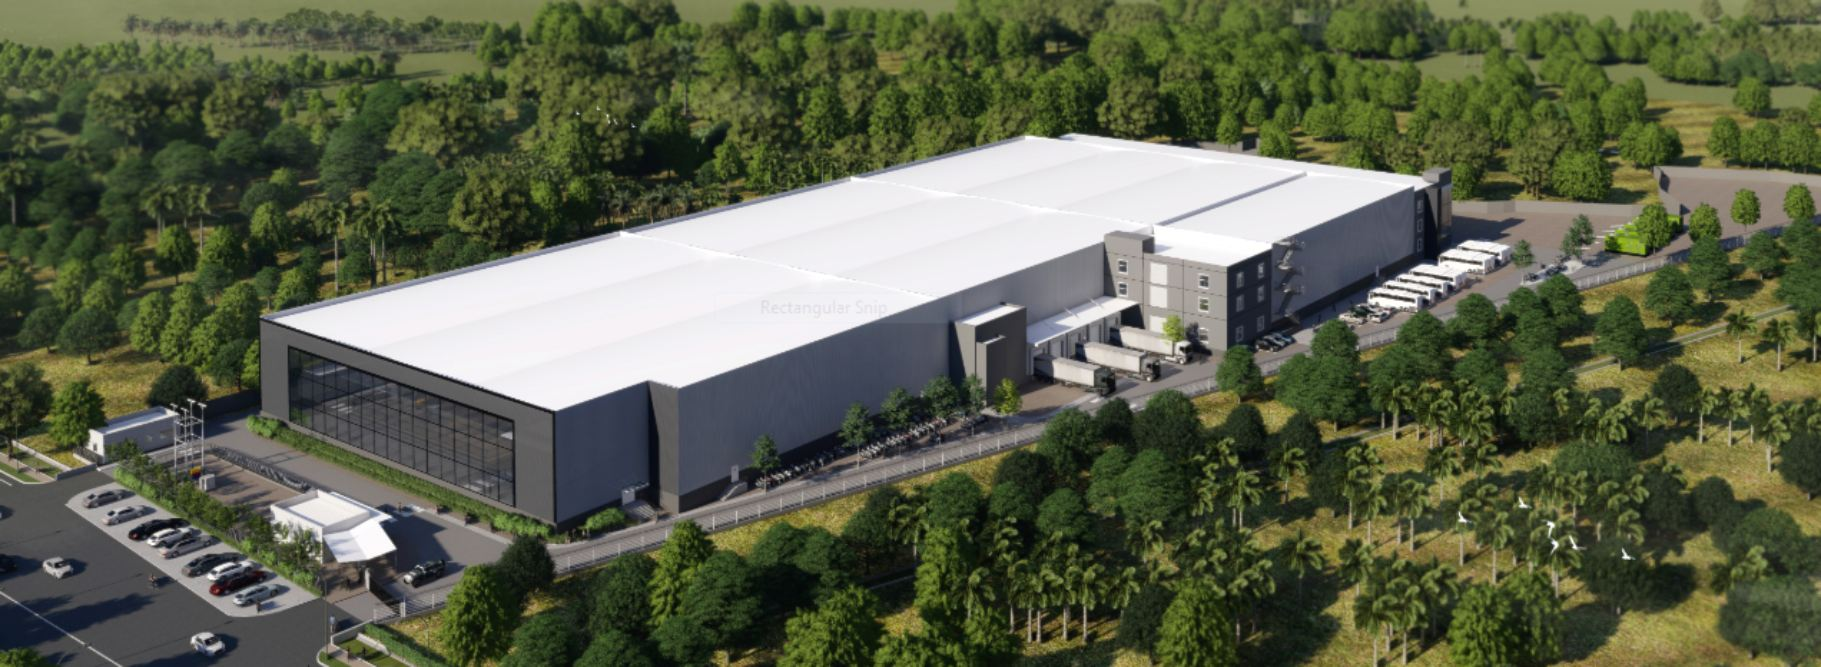 Ascendas India Trust to acquire its first industrial facility at Chennai's Mahindra World City - THE EDGE SINGAPORE